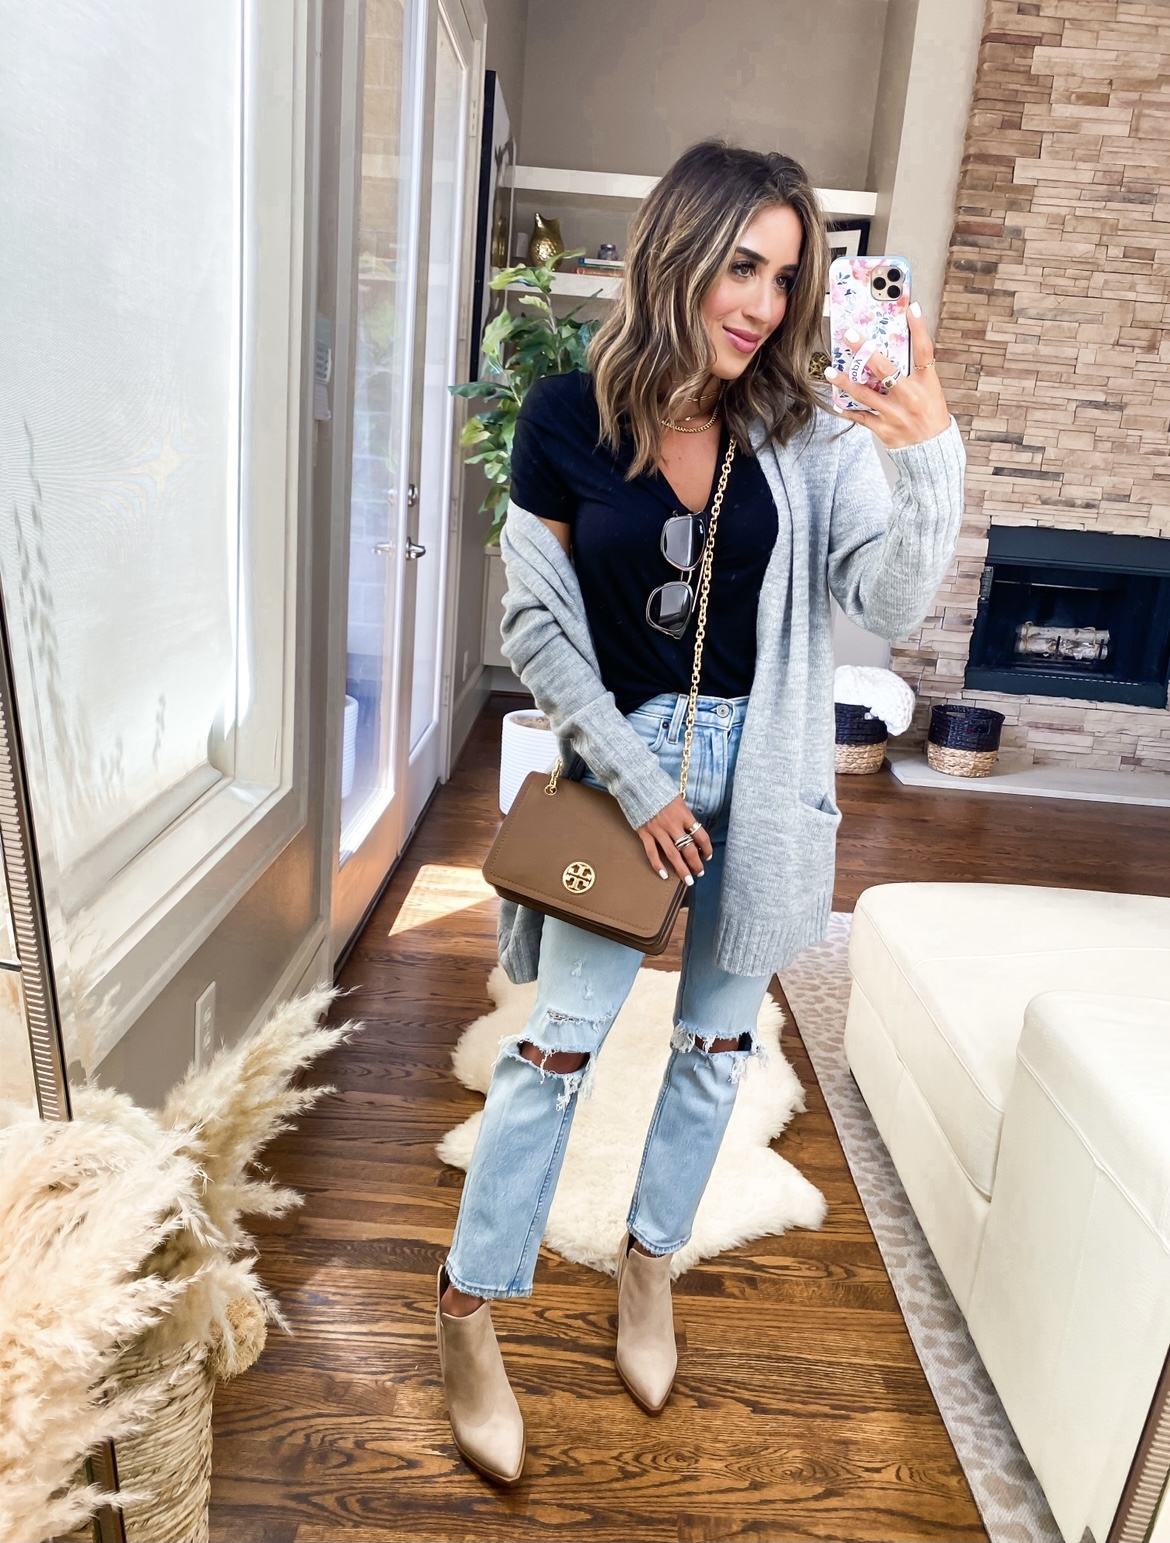 lifetsyle and fashion bloggers alexis and samantha belbel share their must haves from the 2021 Nordstrom Anniversary Sale | adoubledose.com